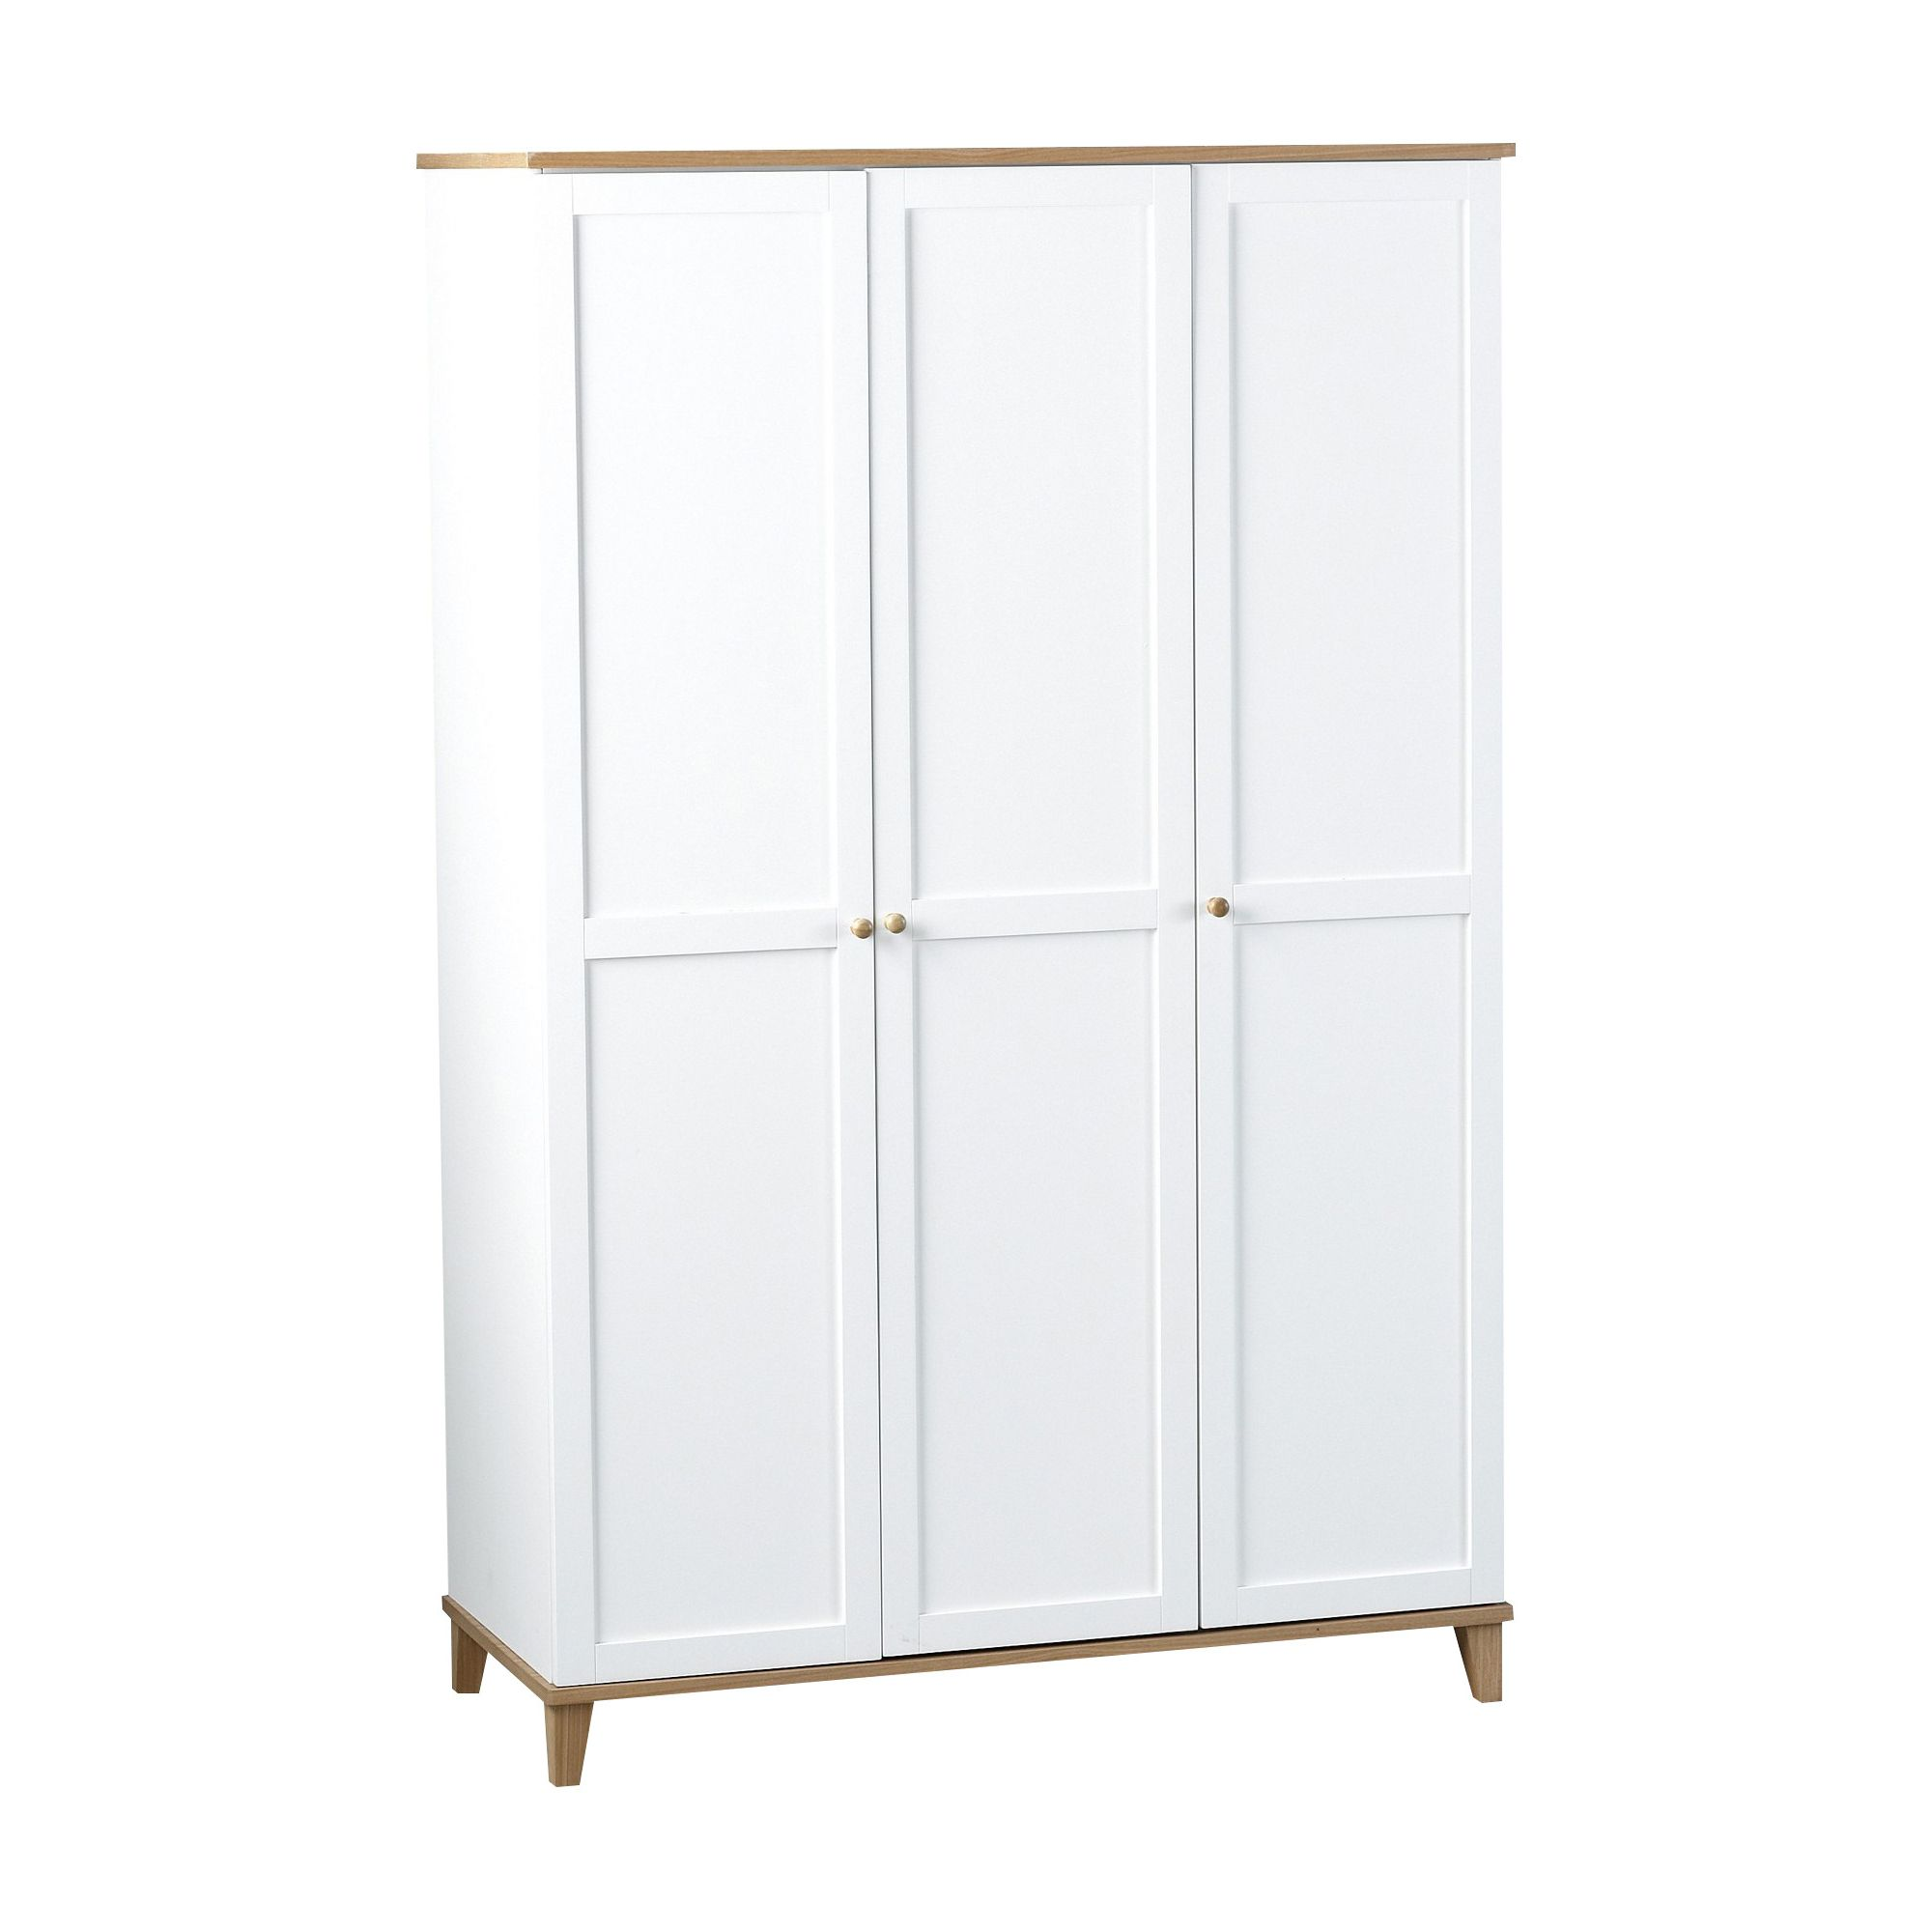 Home Essence Penzance Three Door Wardrobe in White/Ash Veneer at Tesco Direct